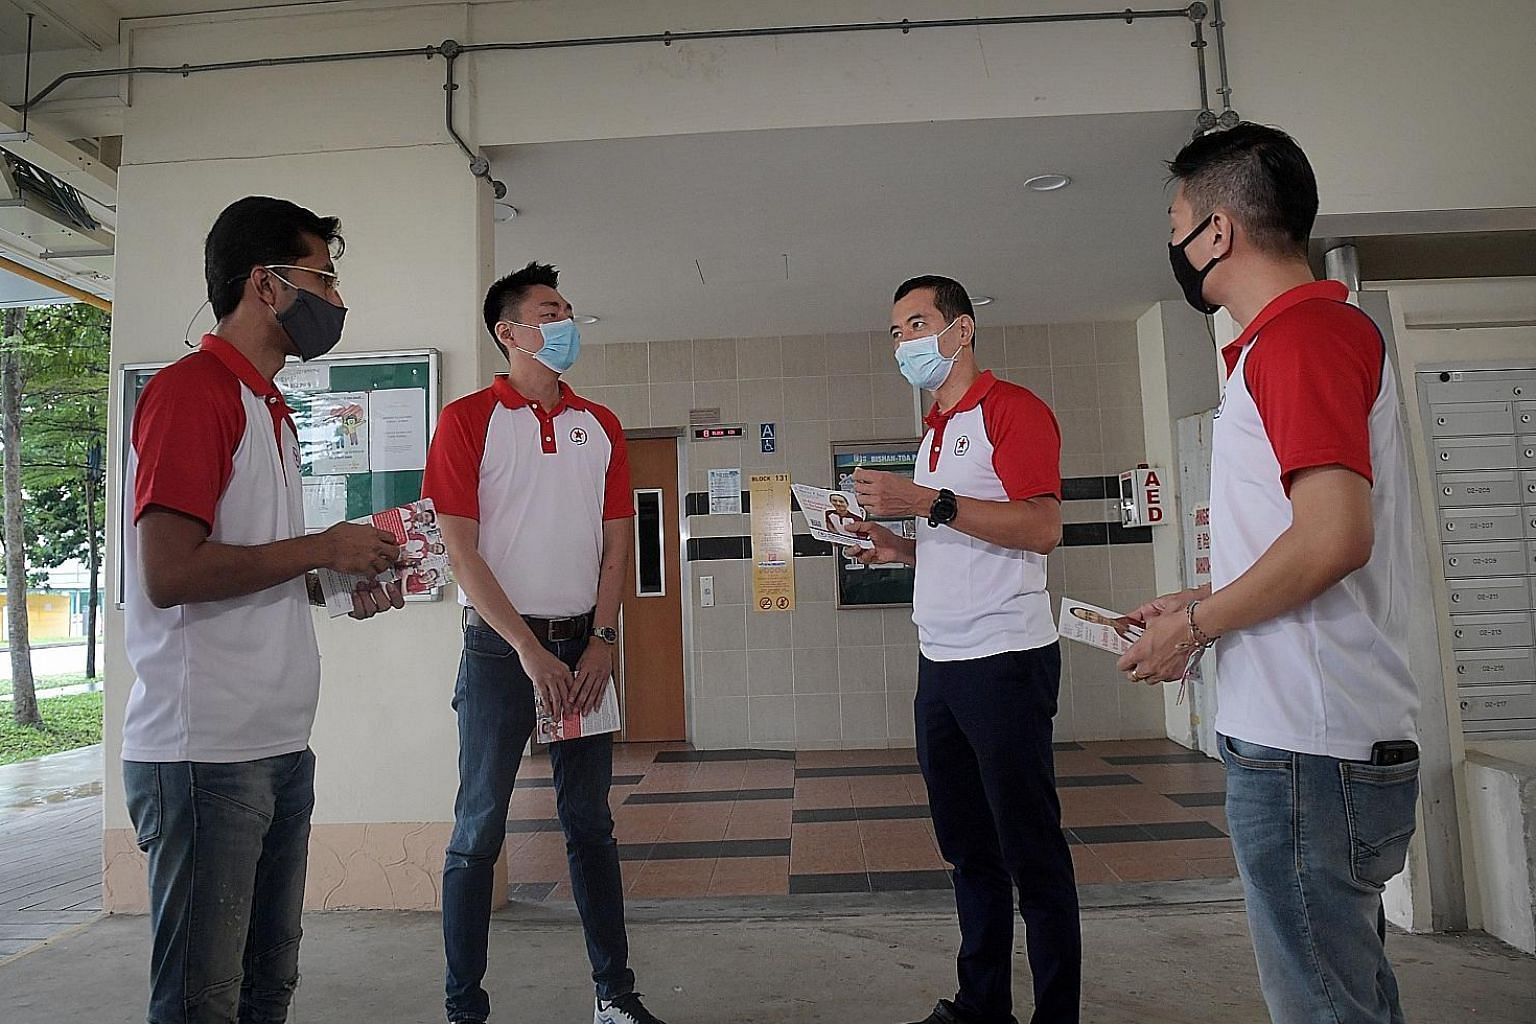 From left: Singapore People's Party candidates Osman Sulaiman, Melvyn Chiu, Steve Chia and Williiamson Lee preparing to hand out fliers and meet residents at Block 131, Bishan Street 12, yesterday.